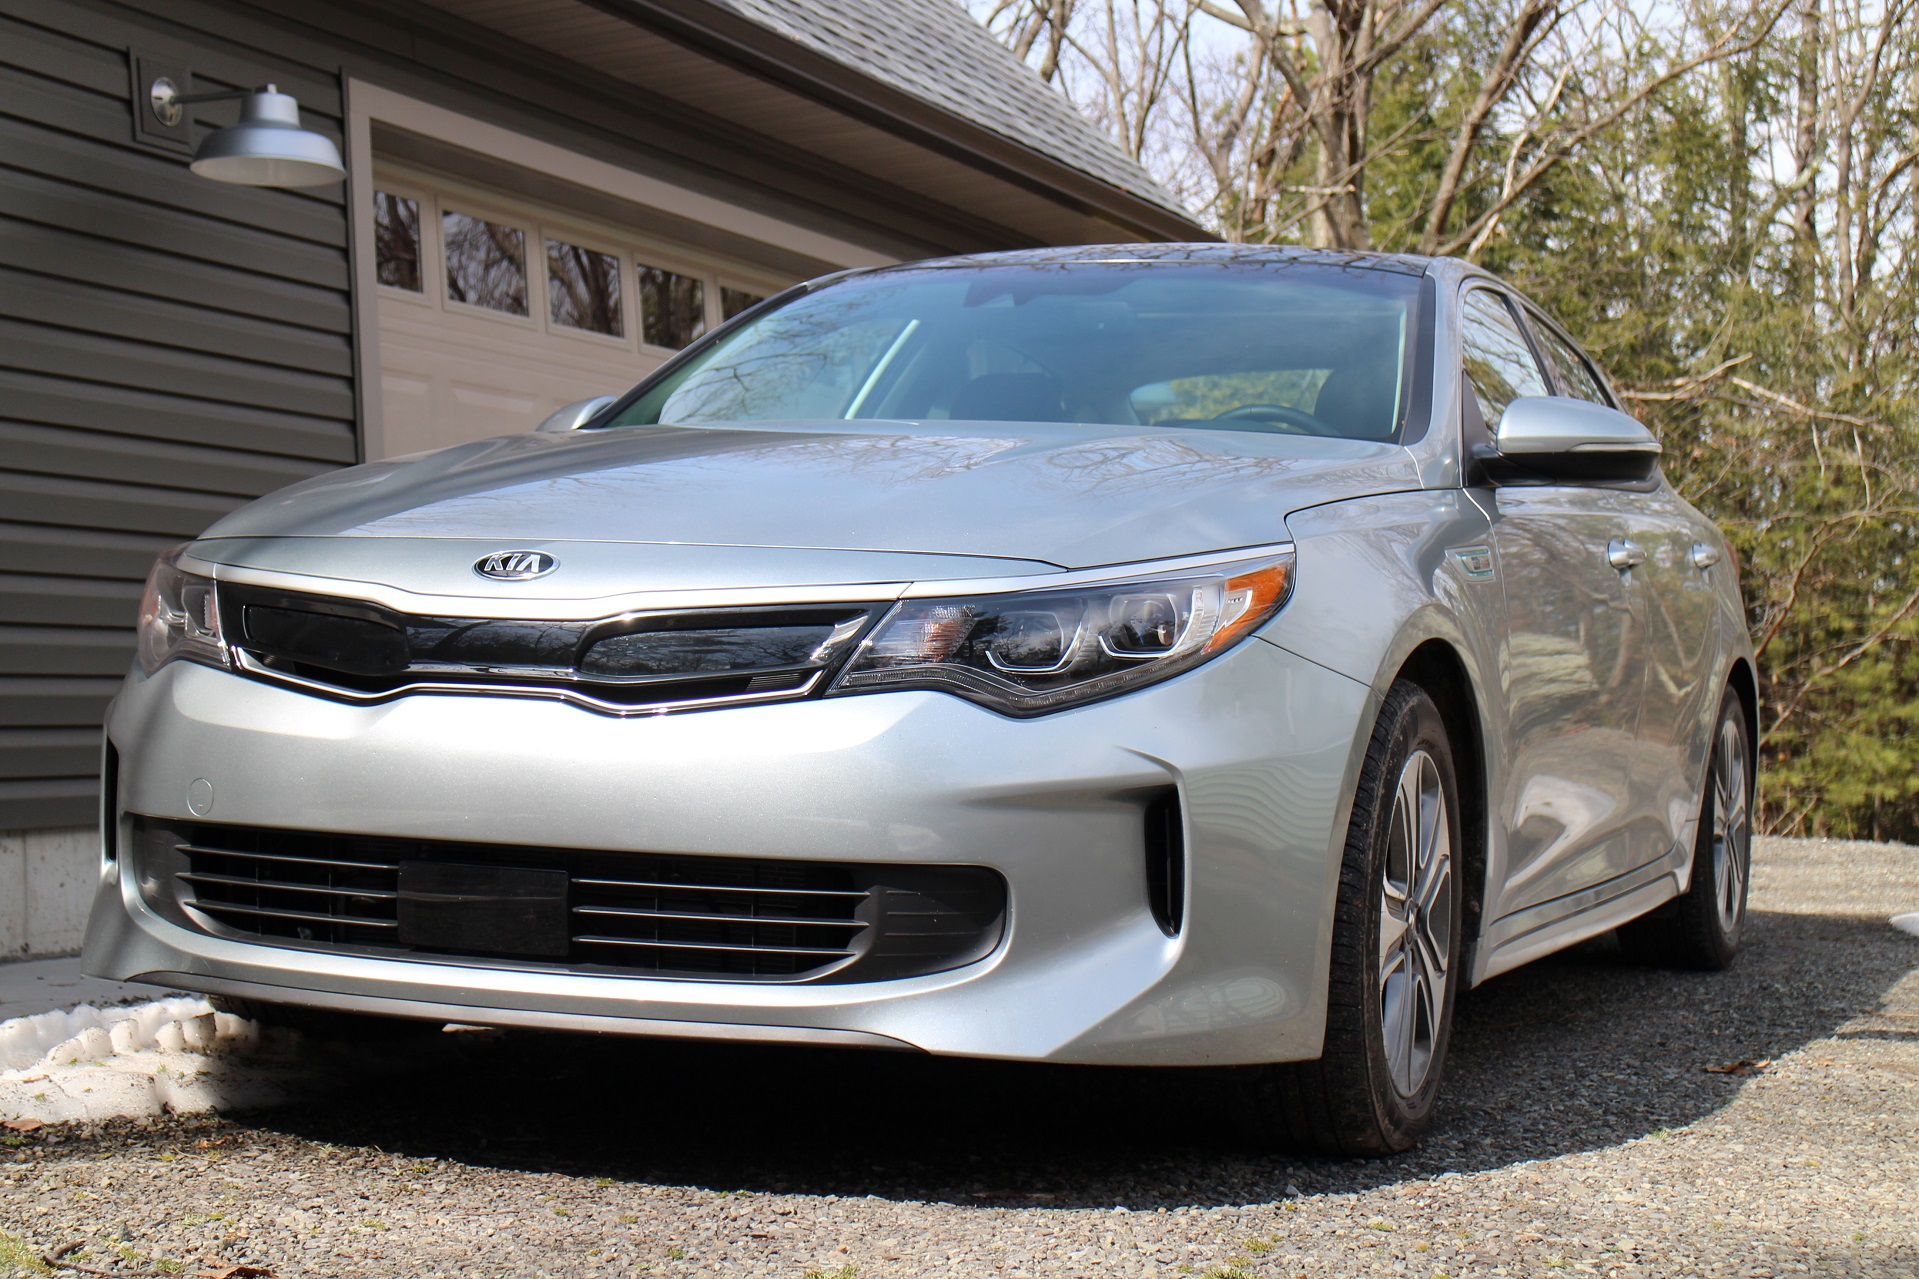 2017 Kia Optima Hybrid: gas mileage review of mid-size sedan